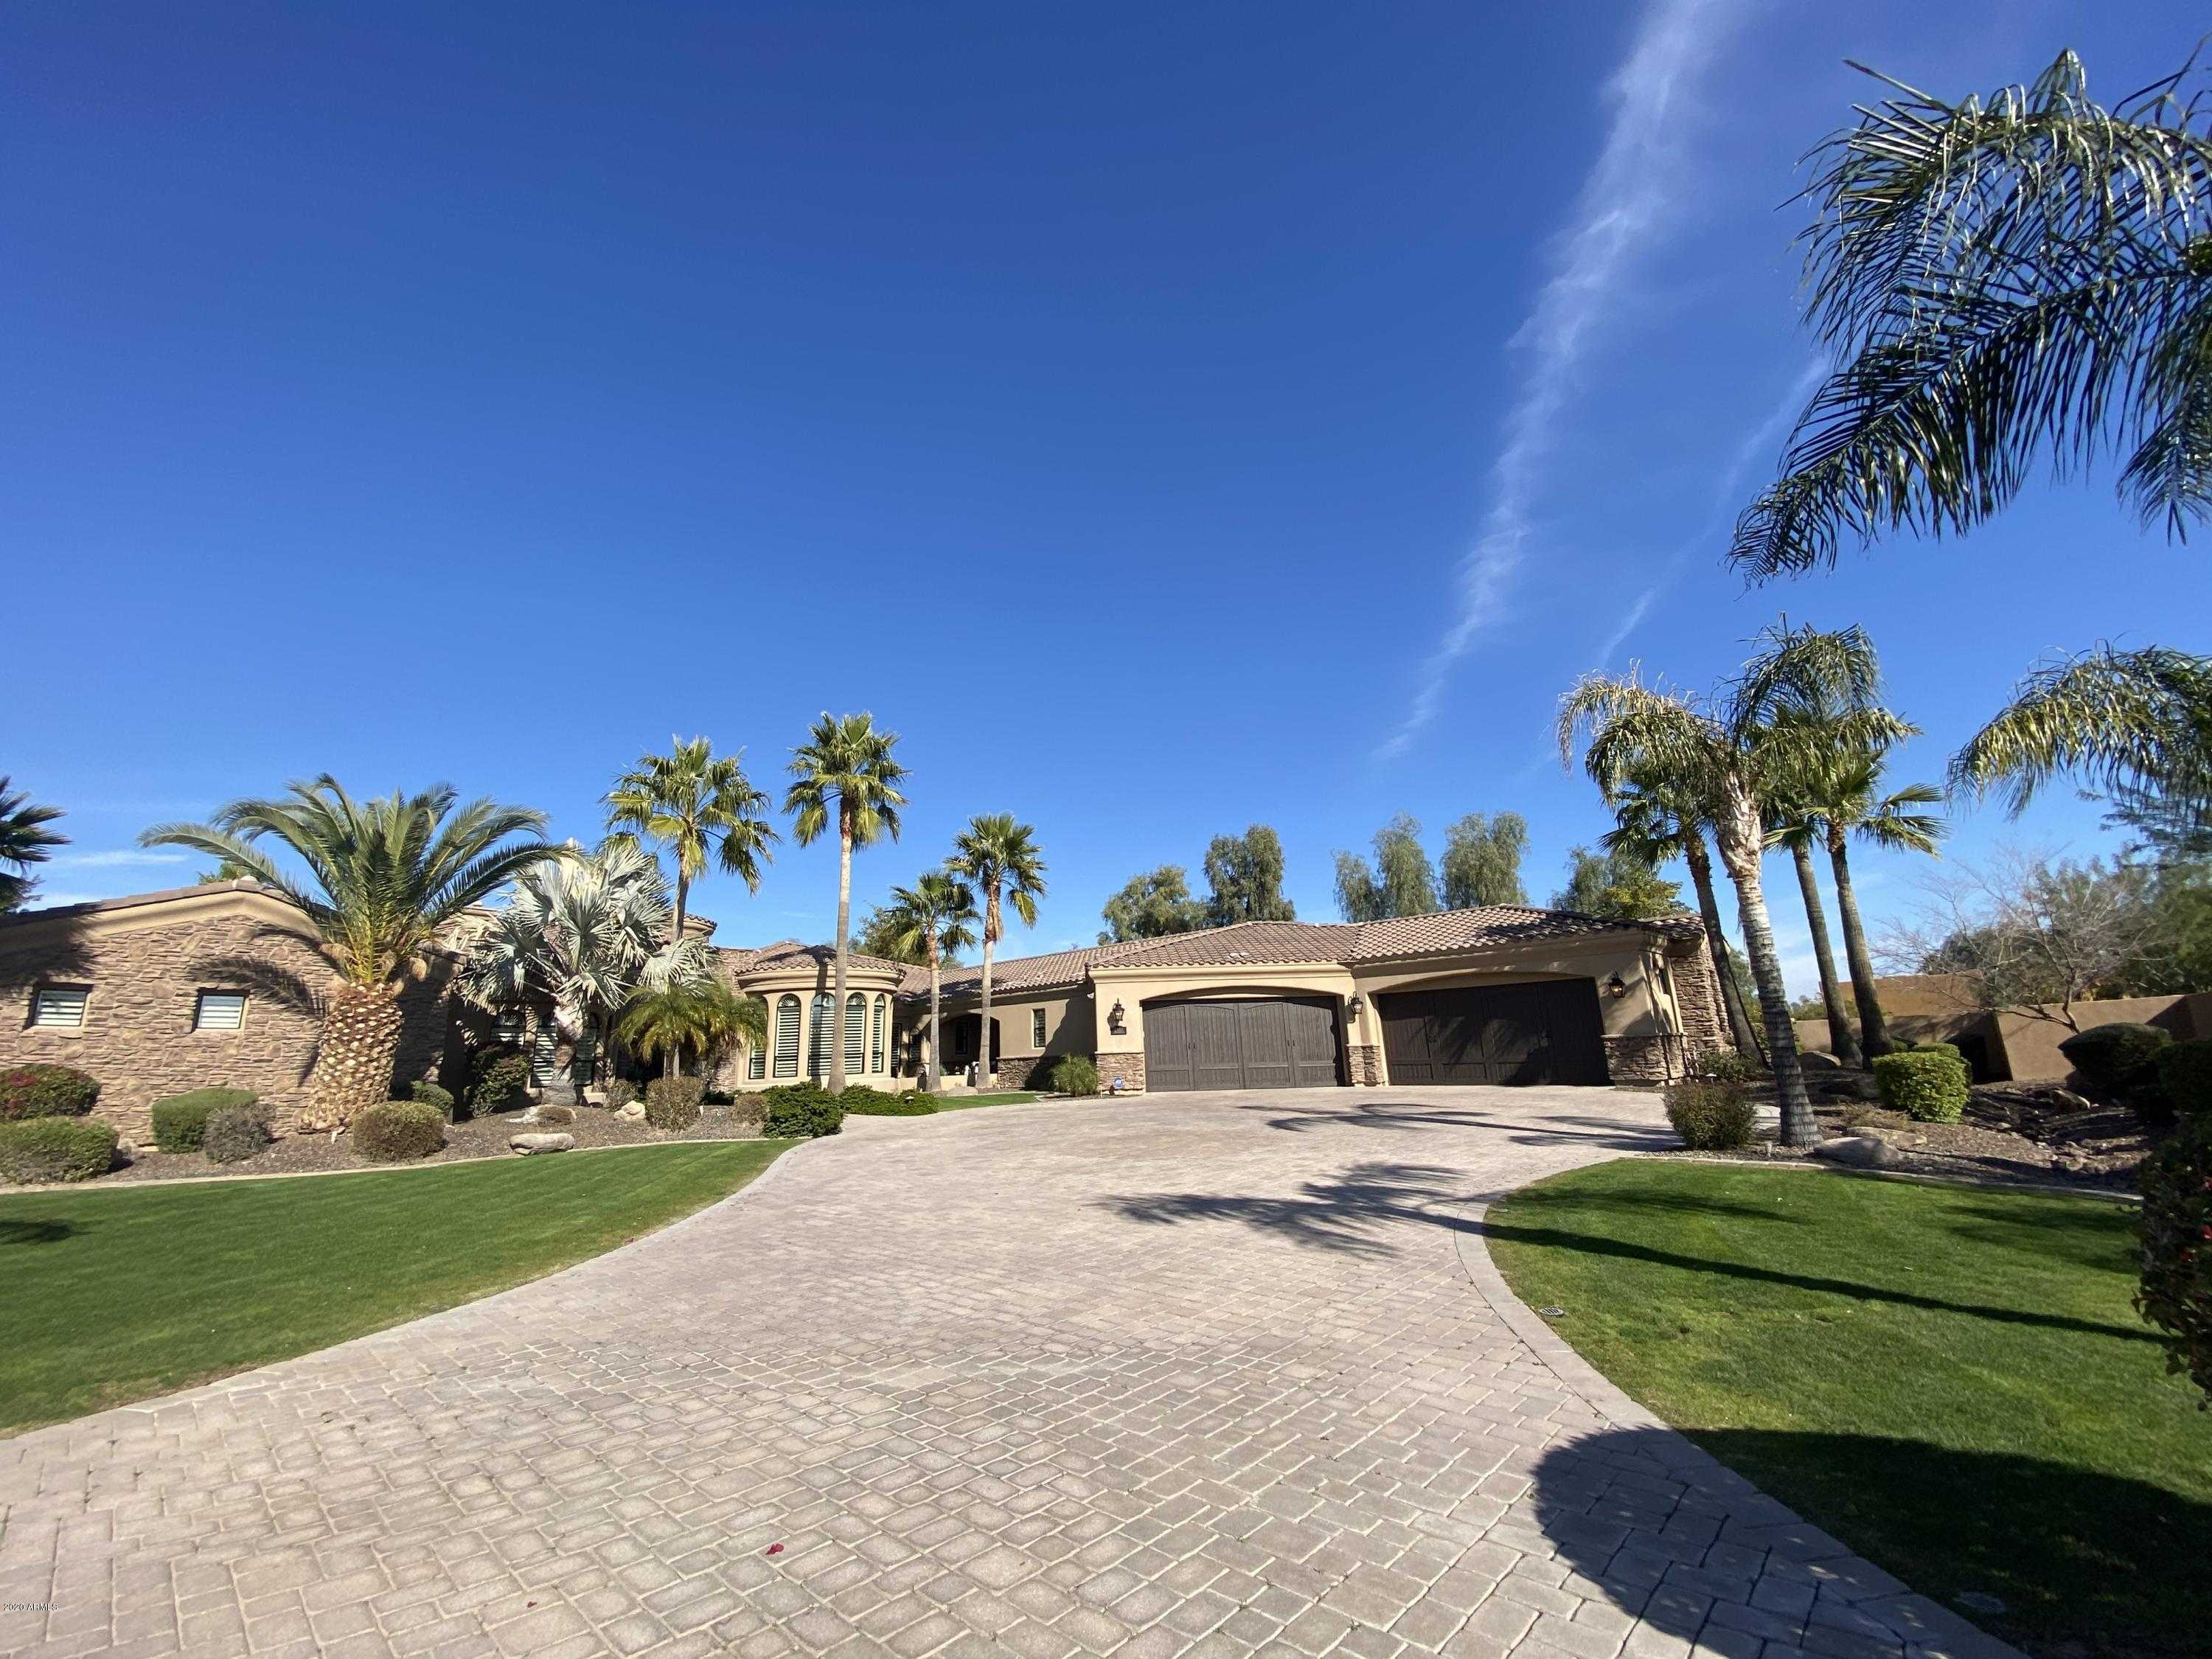 $1,575,000 - 5Br/6Ba - Home for Sale in Summit At Sunrise Mountain, Peoria